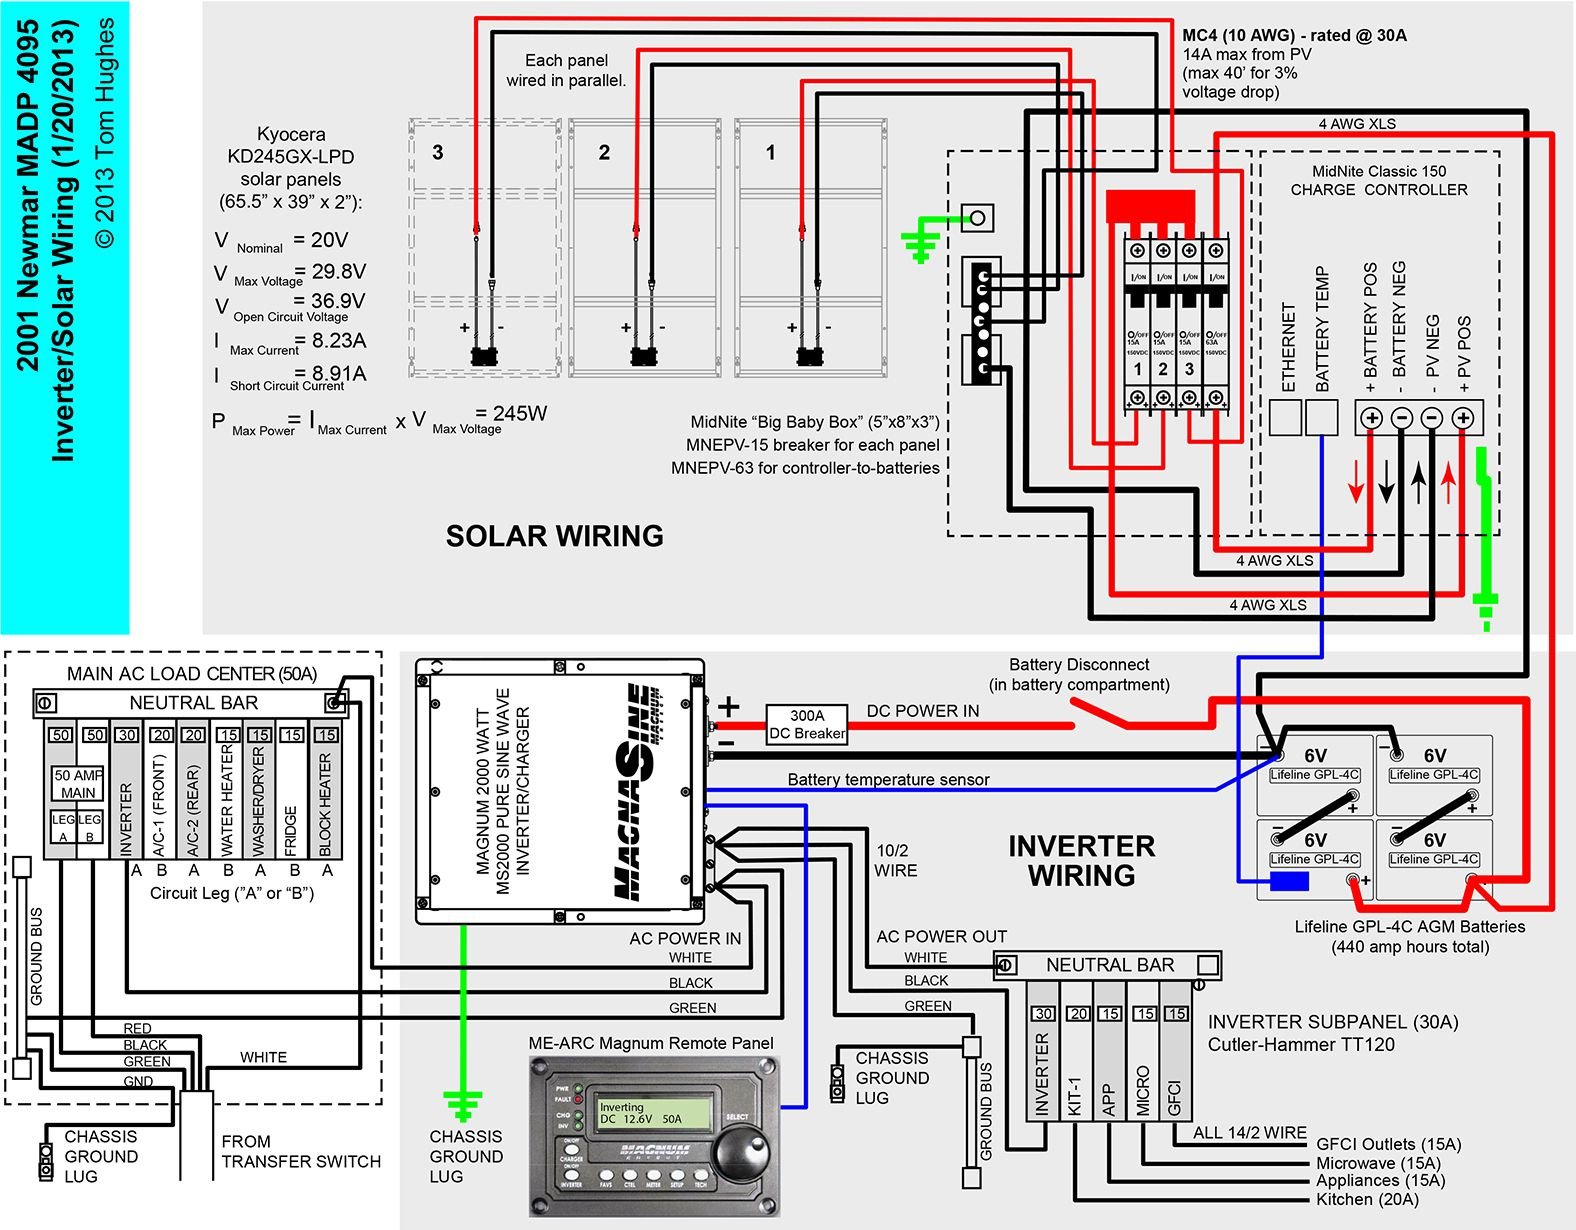 hight resolution of rv inverter wiring diagram rv inverter wiring diagram camper power converter wiring diagram truck power inverter wiring diagram